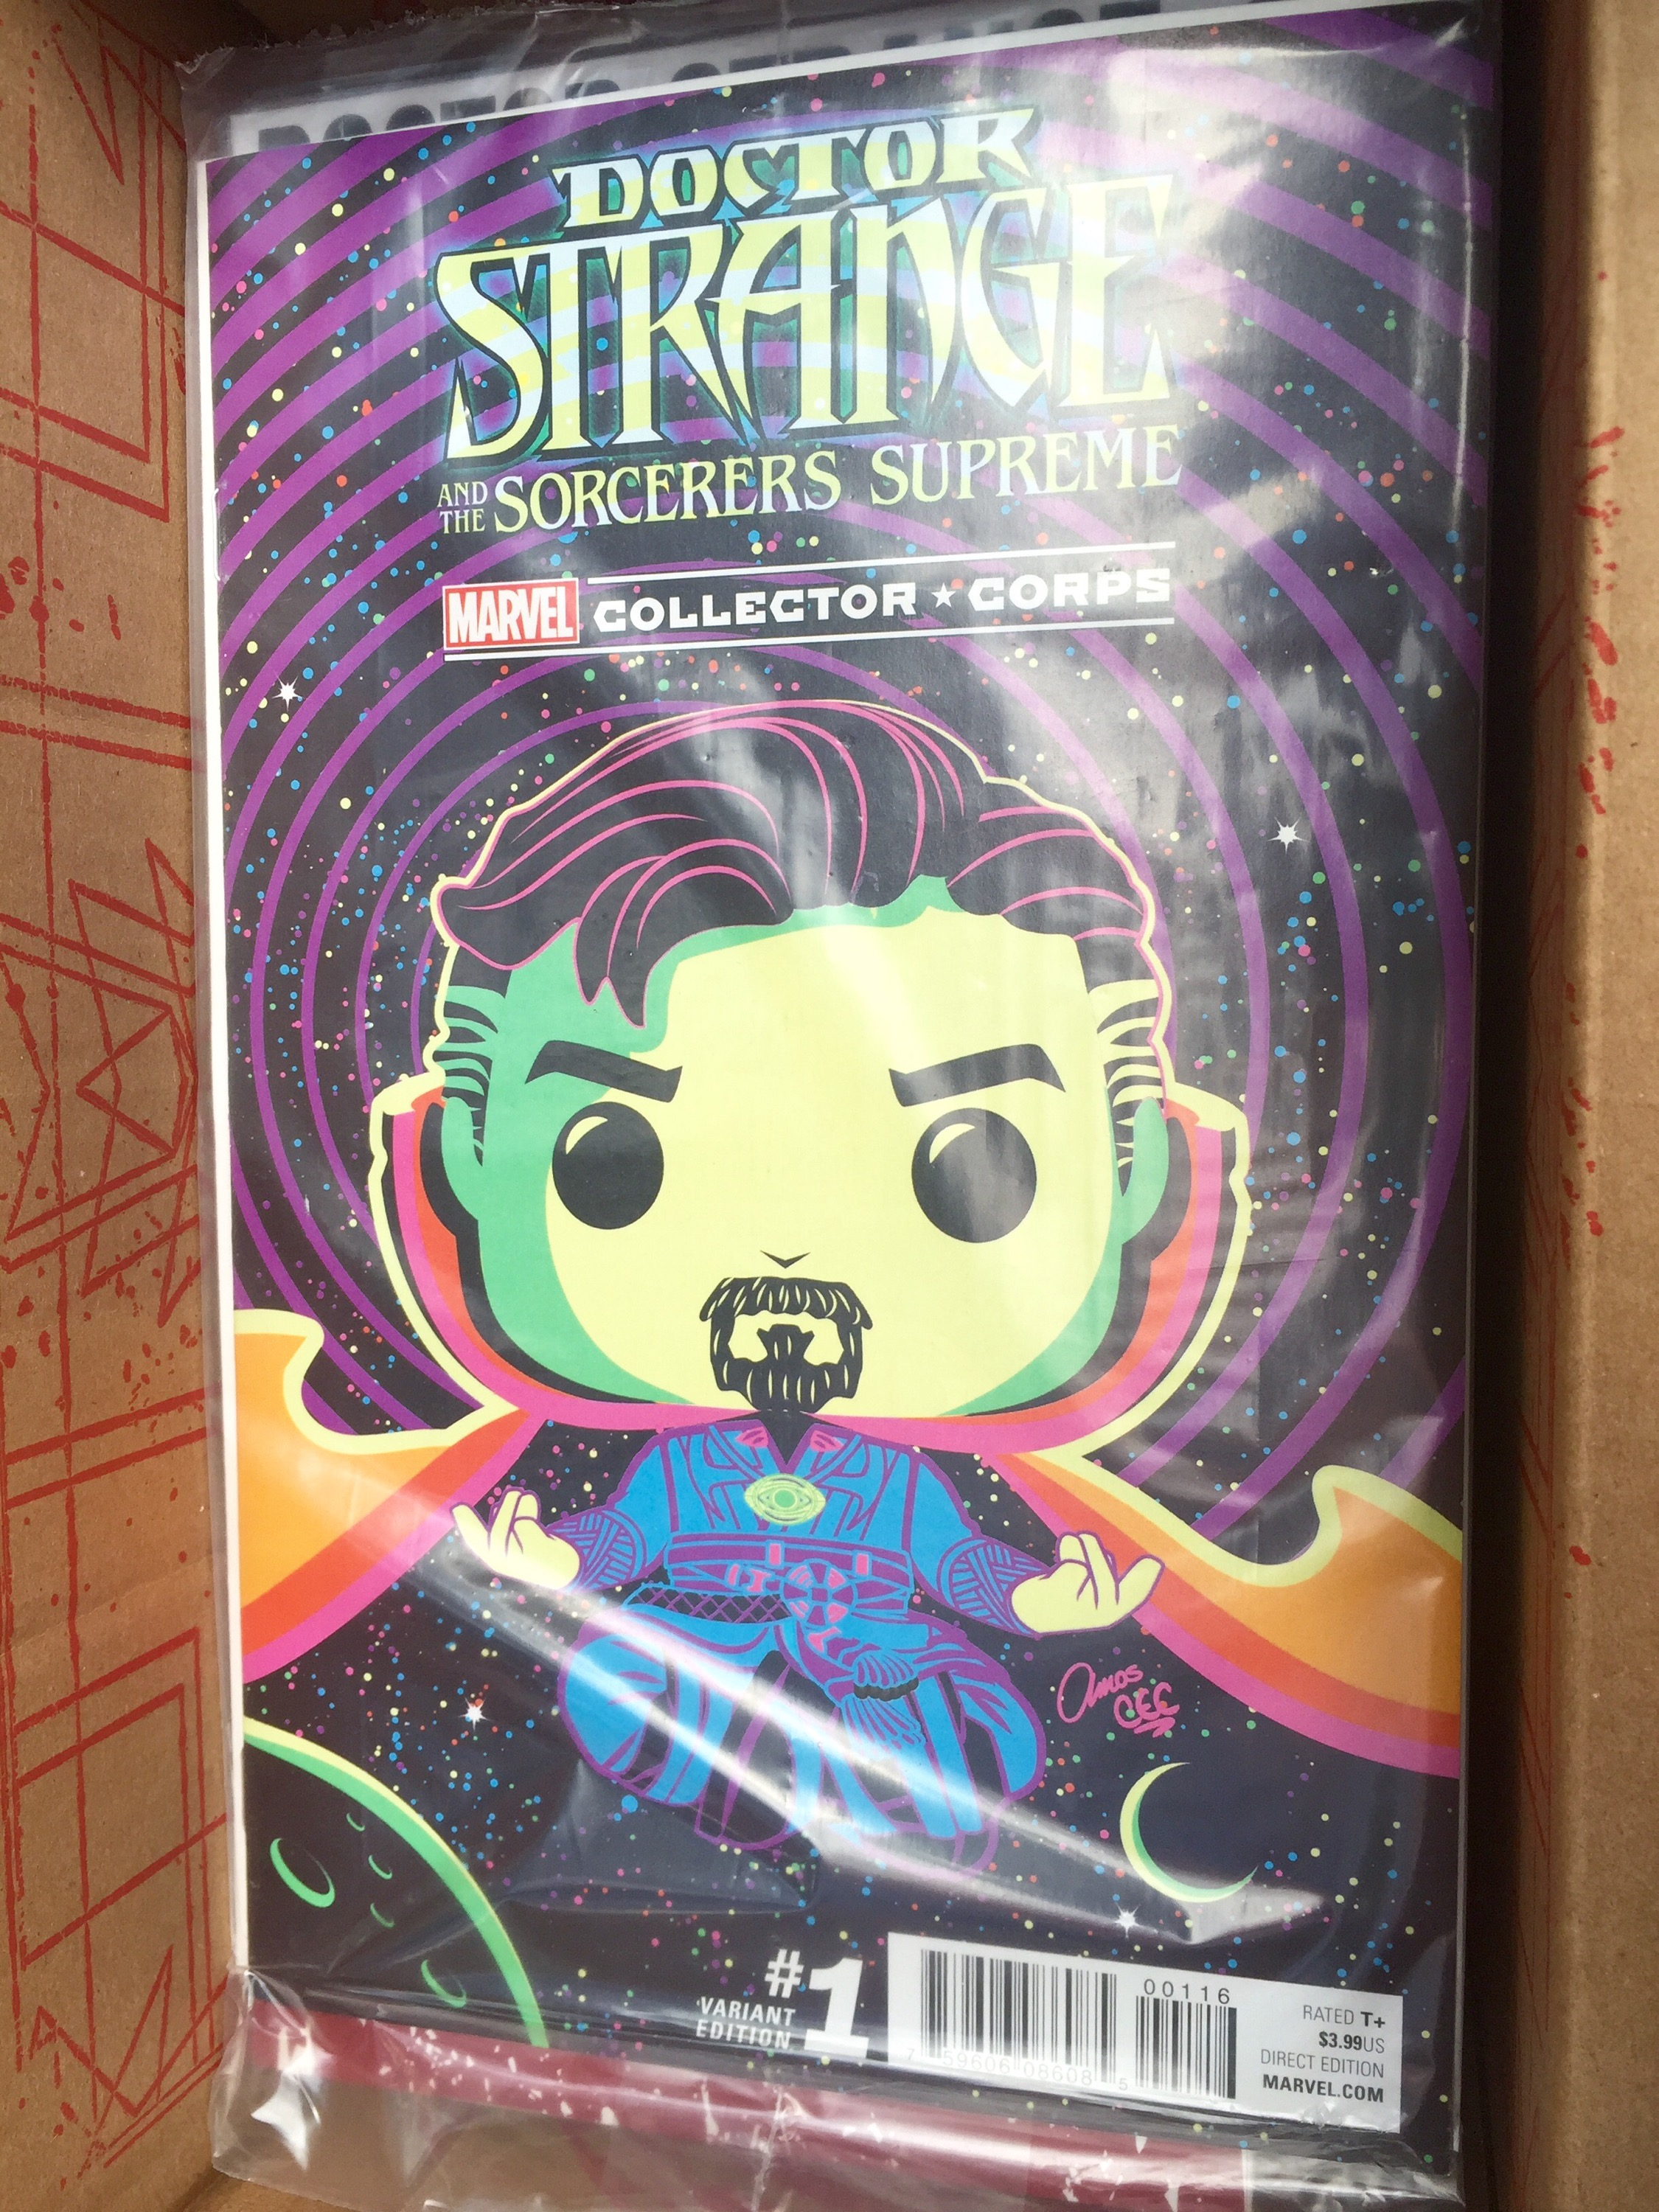 DOCTOR STRANGE AND THE SORCERERS SUPREME COMIC #1 MARVEL COLLECTOR CORPS FUNKO